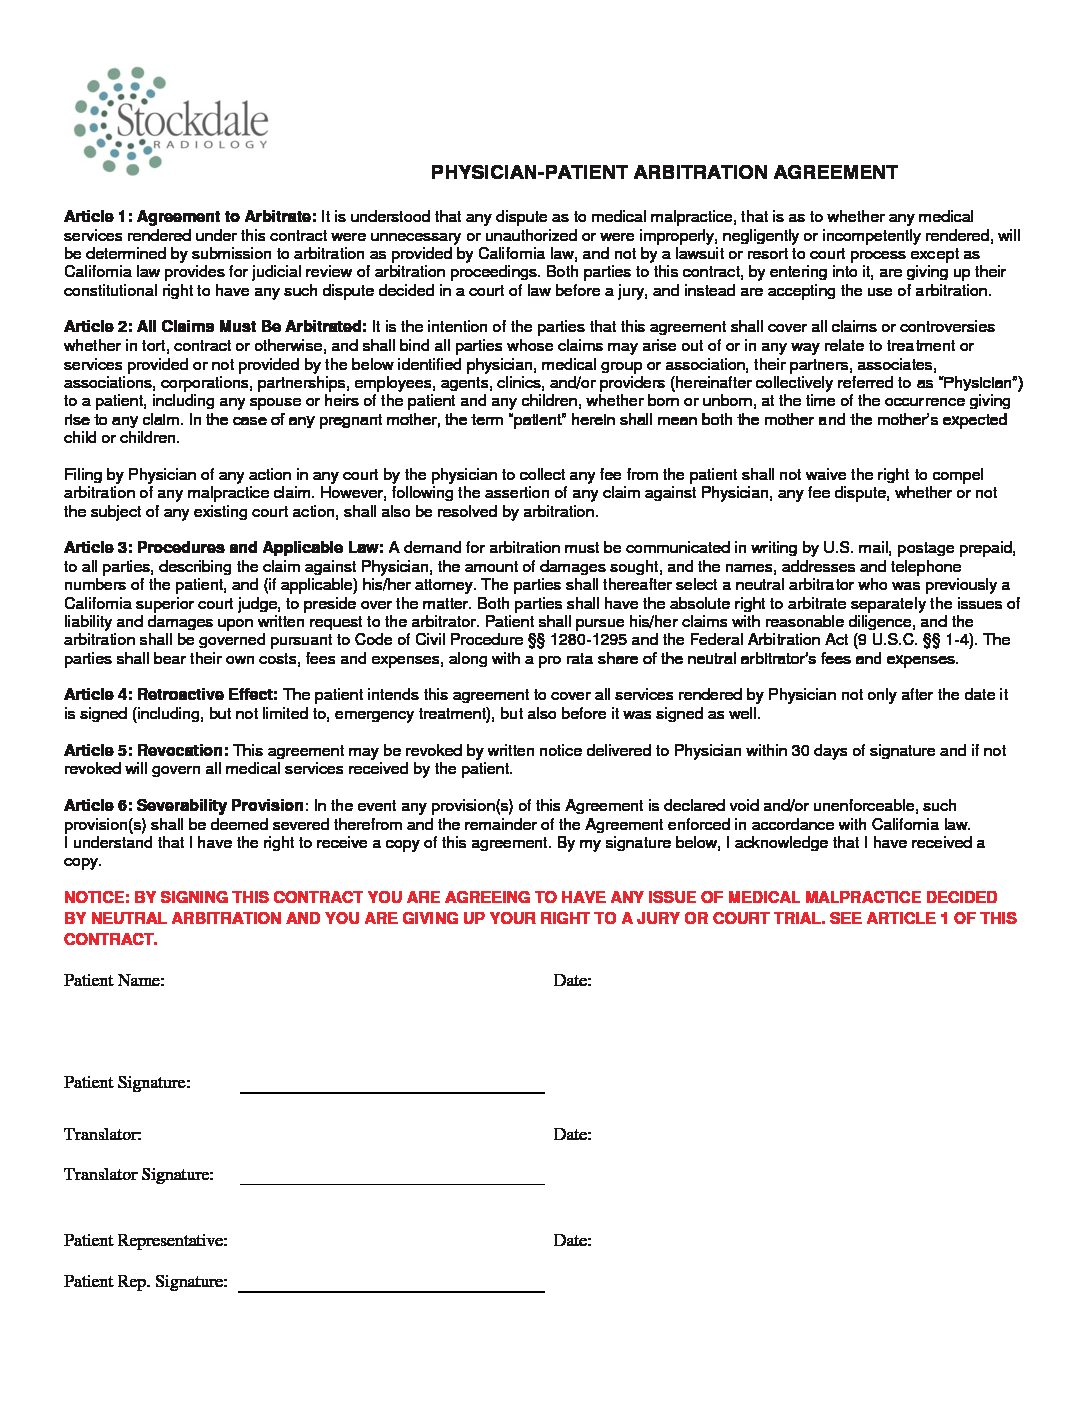 Physician-Patient Arbitration Agreement